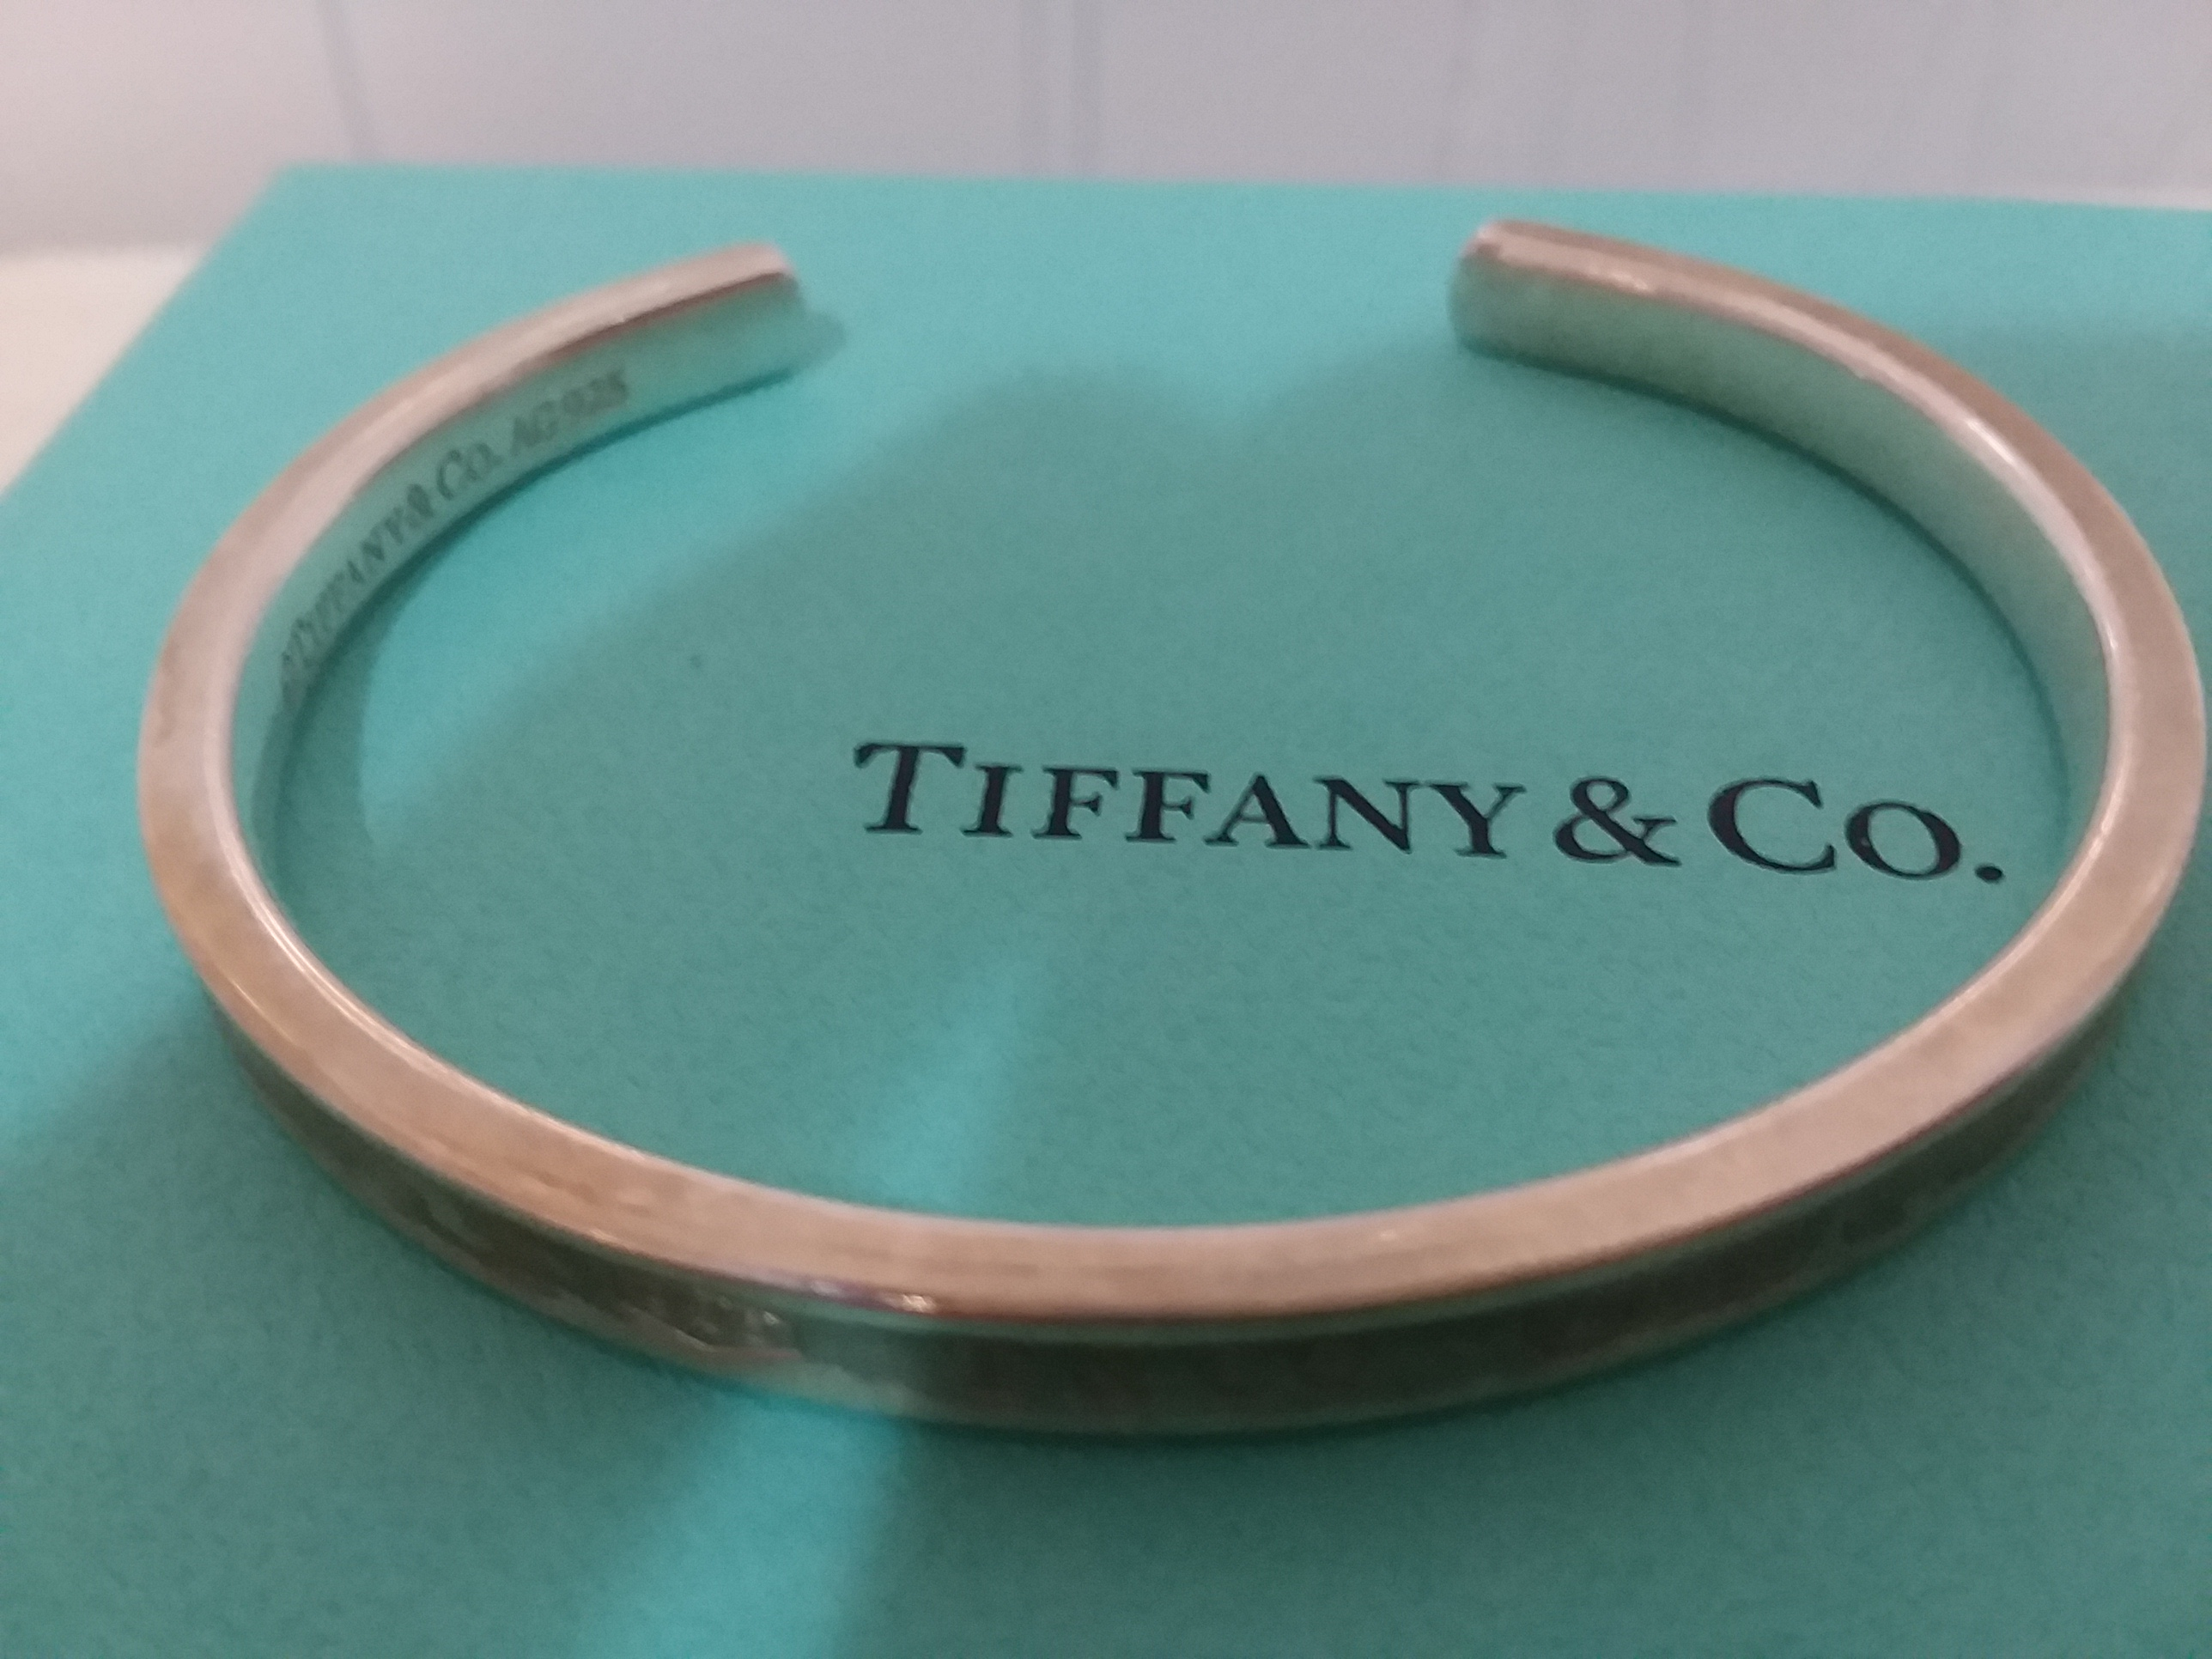 8a541239f Tiffany & Co. Sterling Silver .925 1837 Cuff Bracelet w/ Box ...